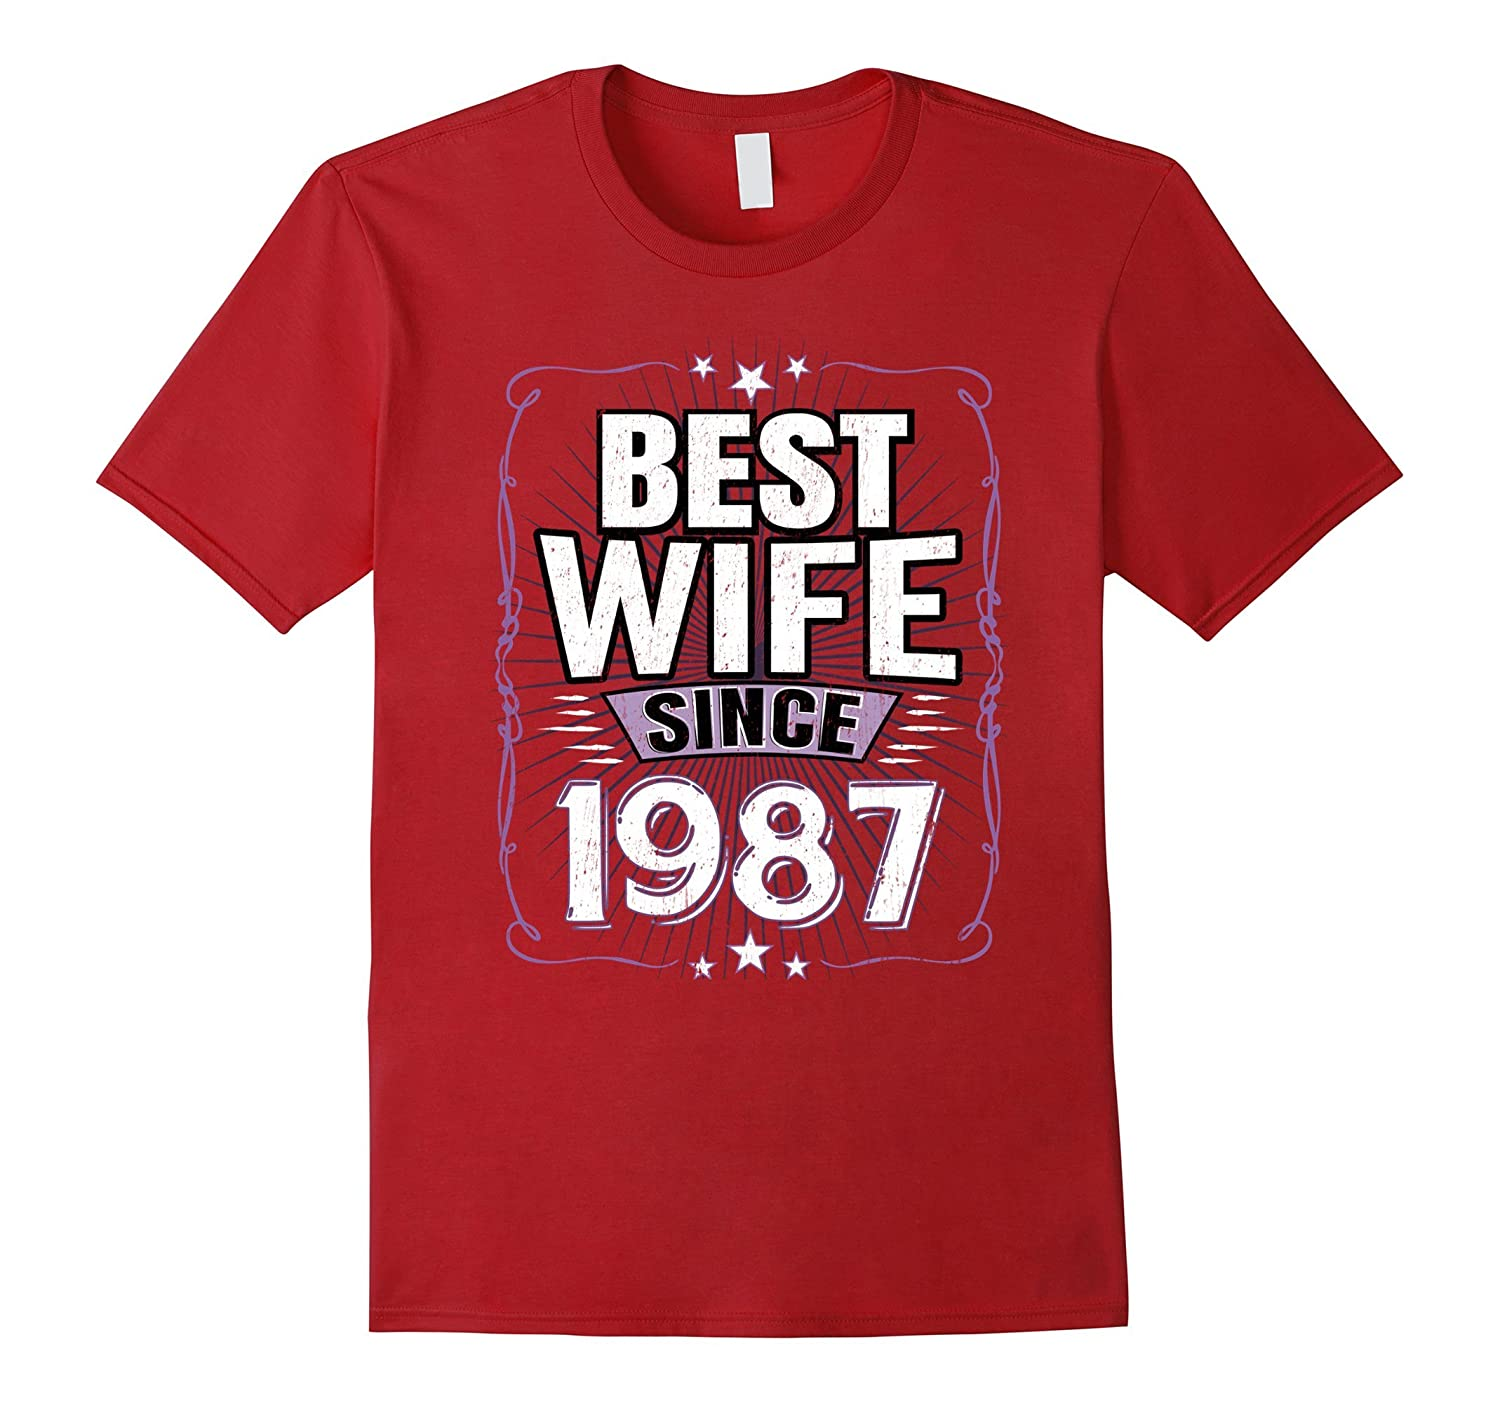 Best Wife Since 1987 T-Shirt 30th Wedding Anniversary Gift-ANZ